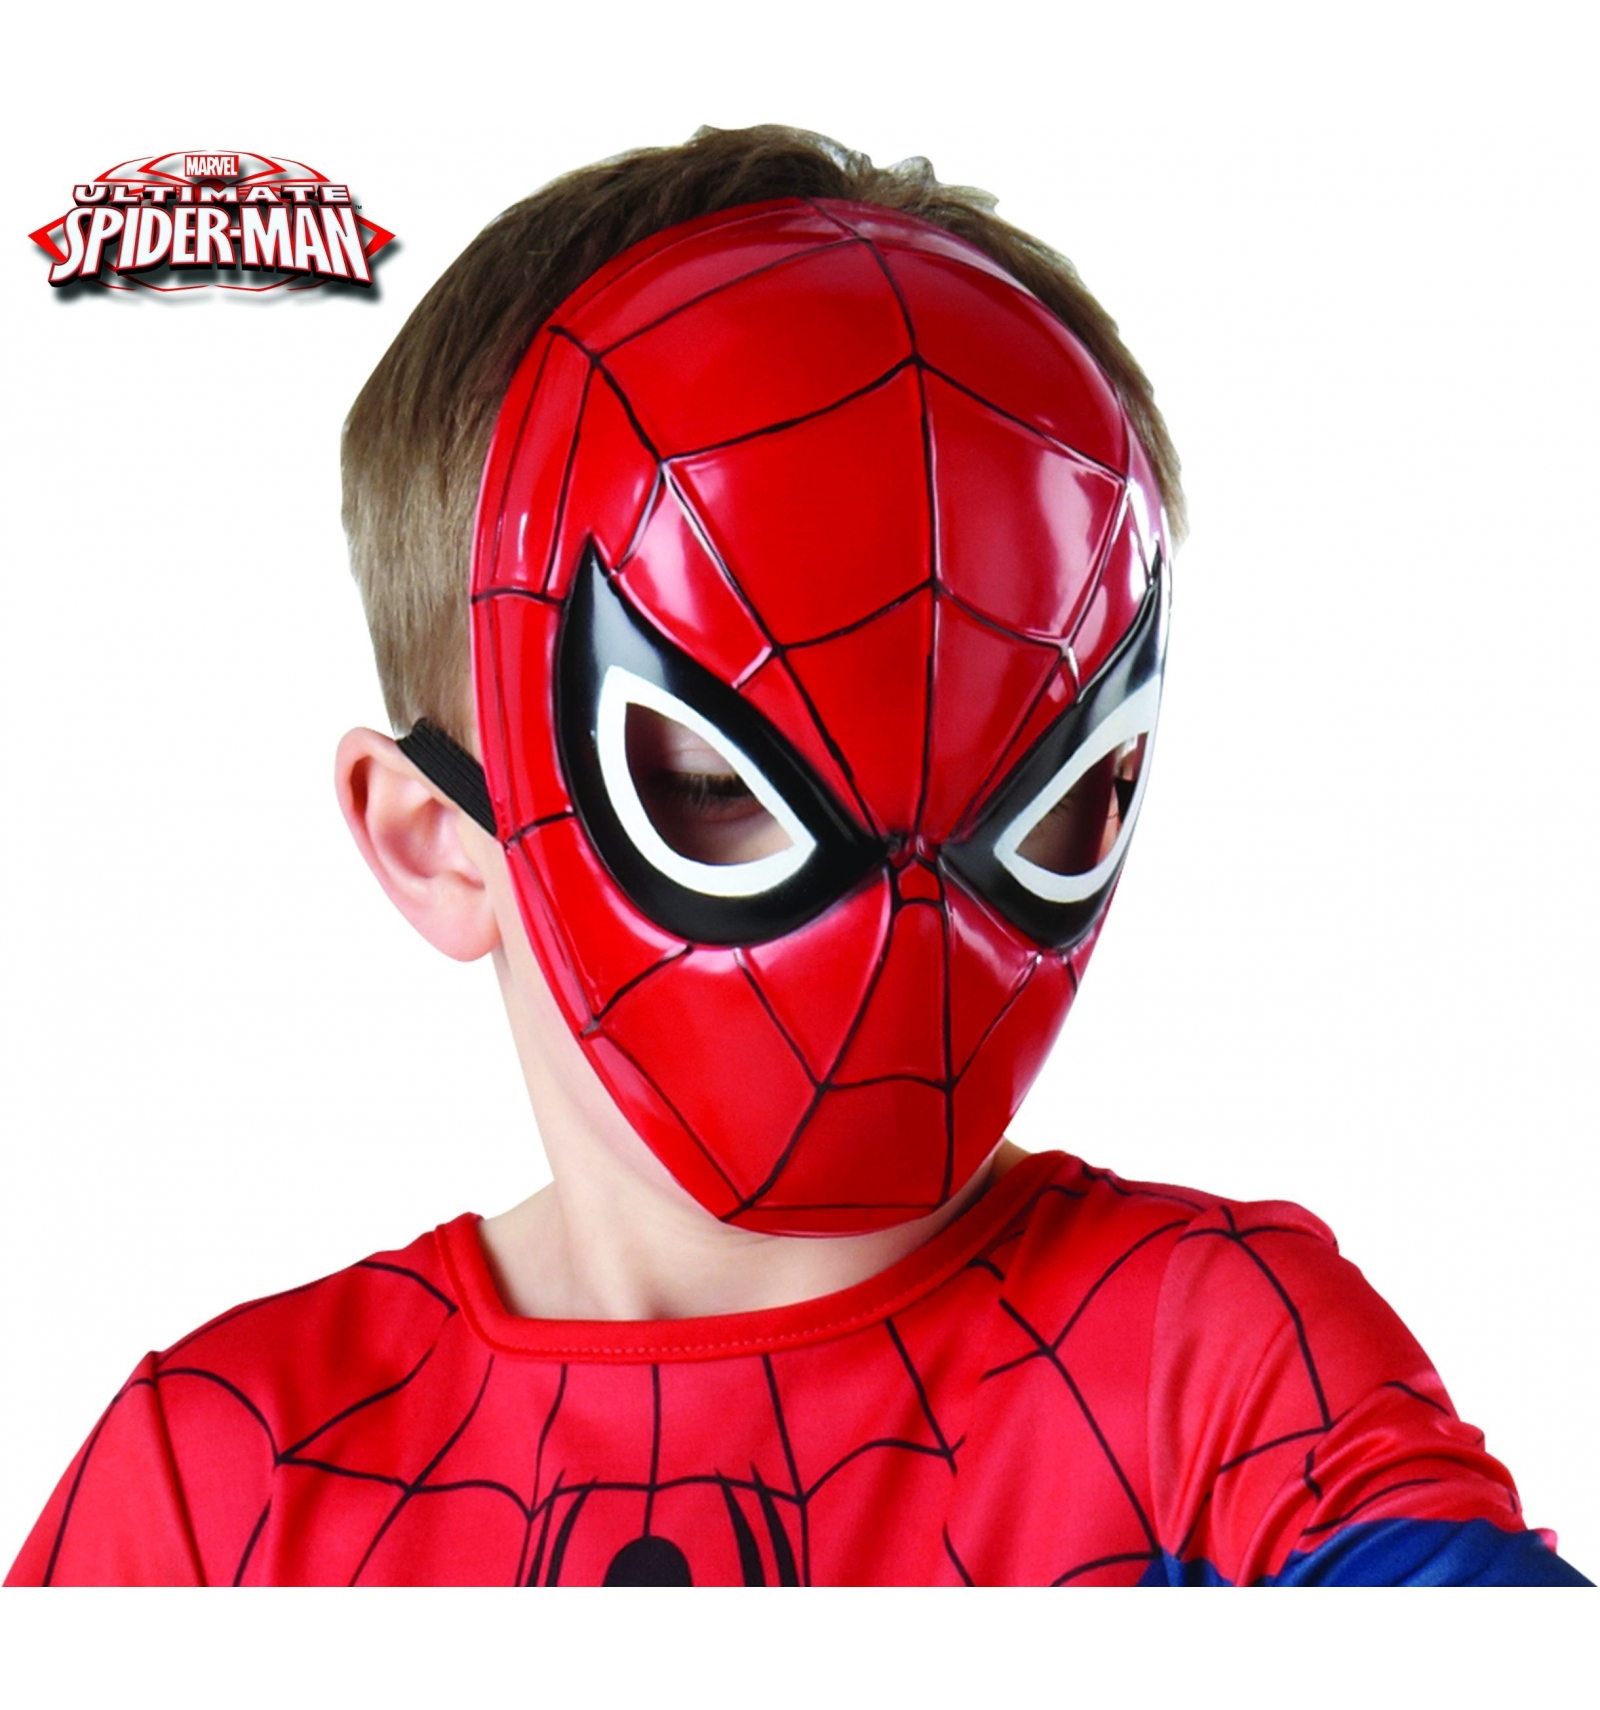 Masque spiderman magasin deguisements offres - Masque spiderman a imprimer ...